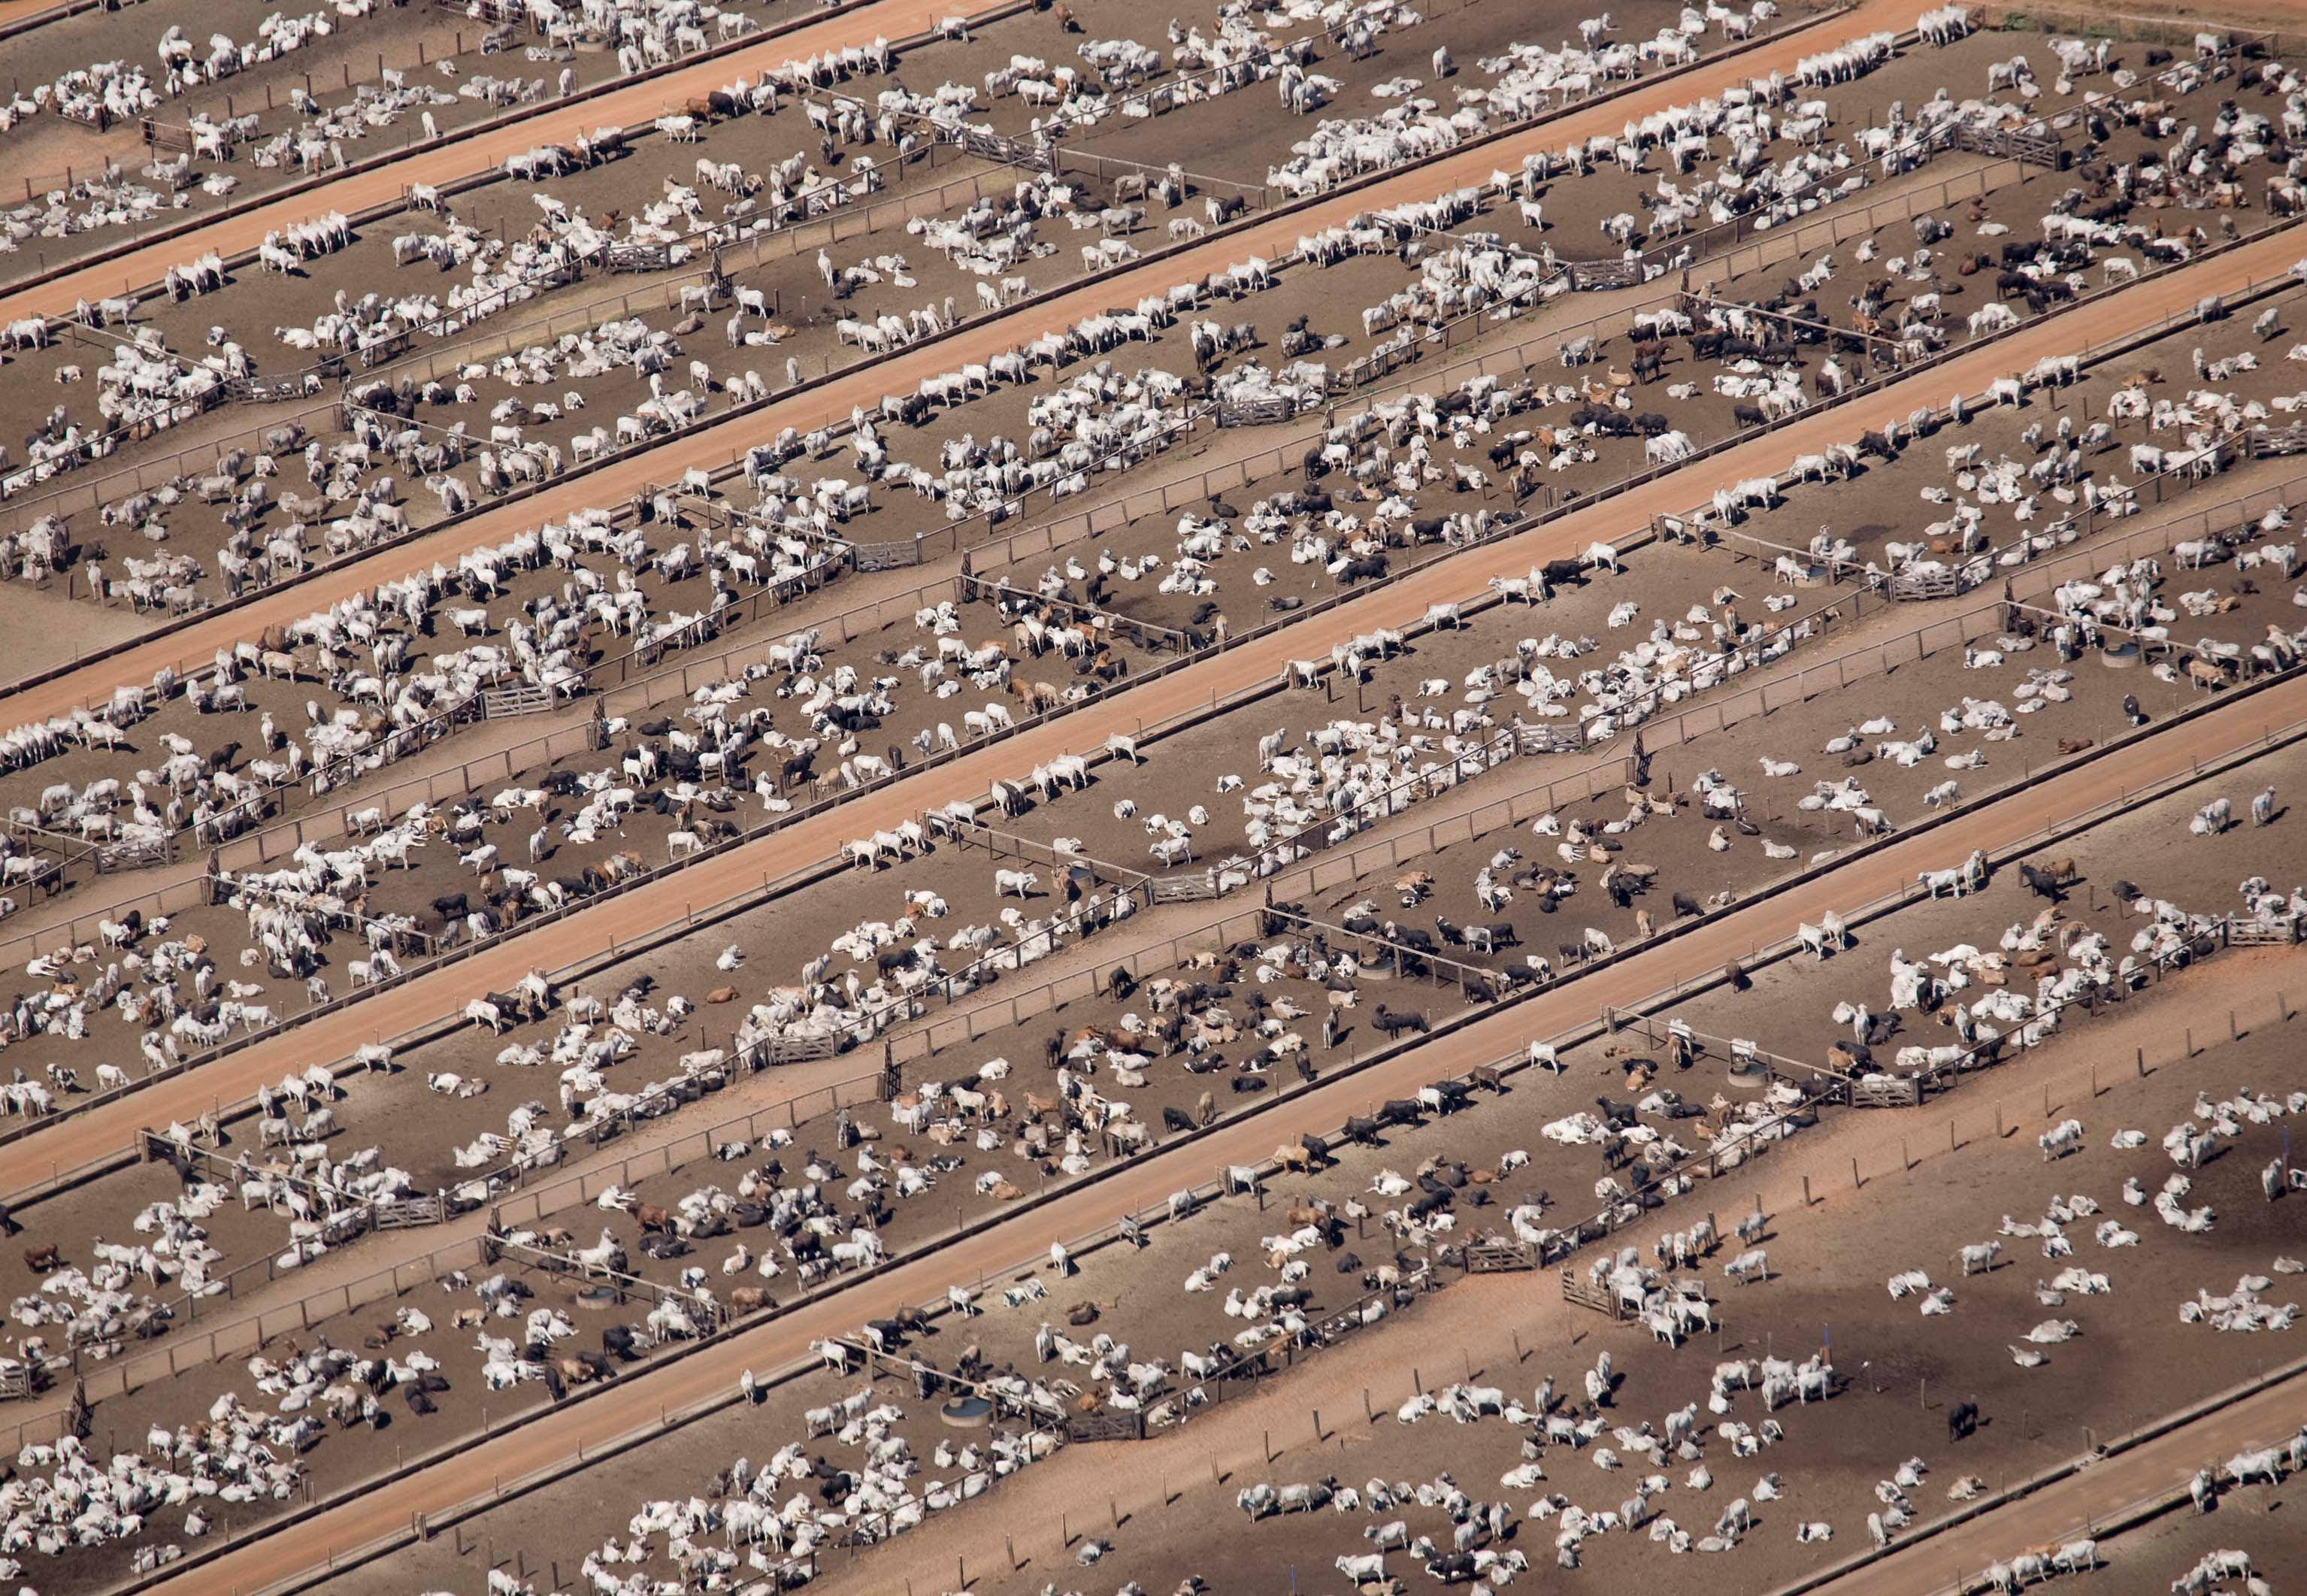 Humans just 0.01% of all life but have destroyed 83% of wild mammals – study